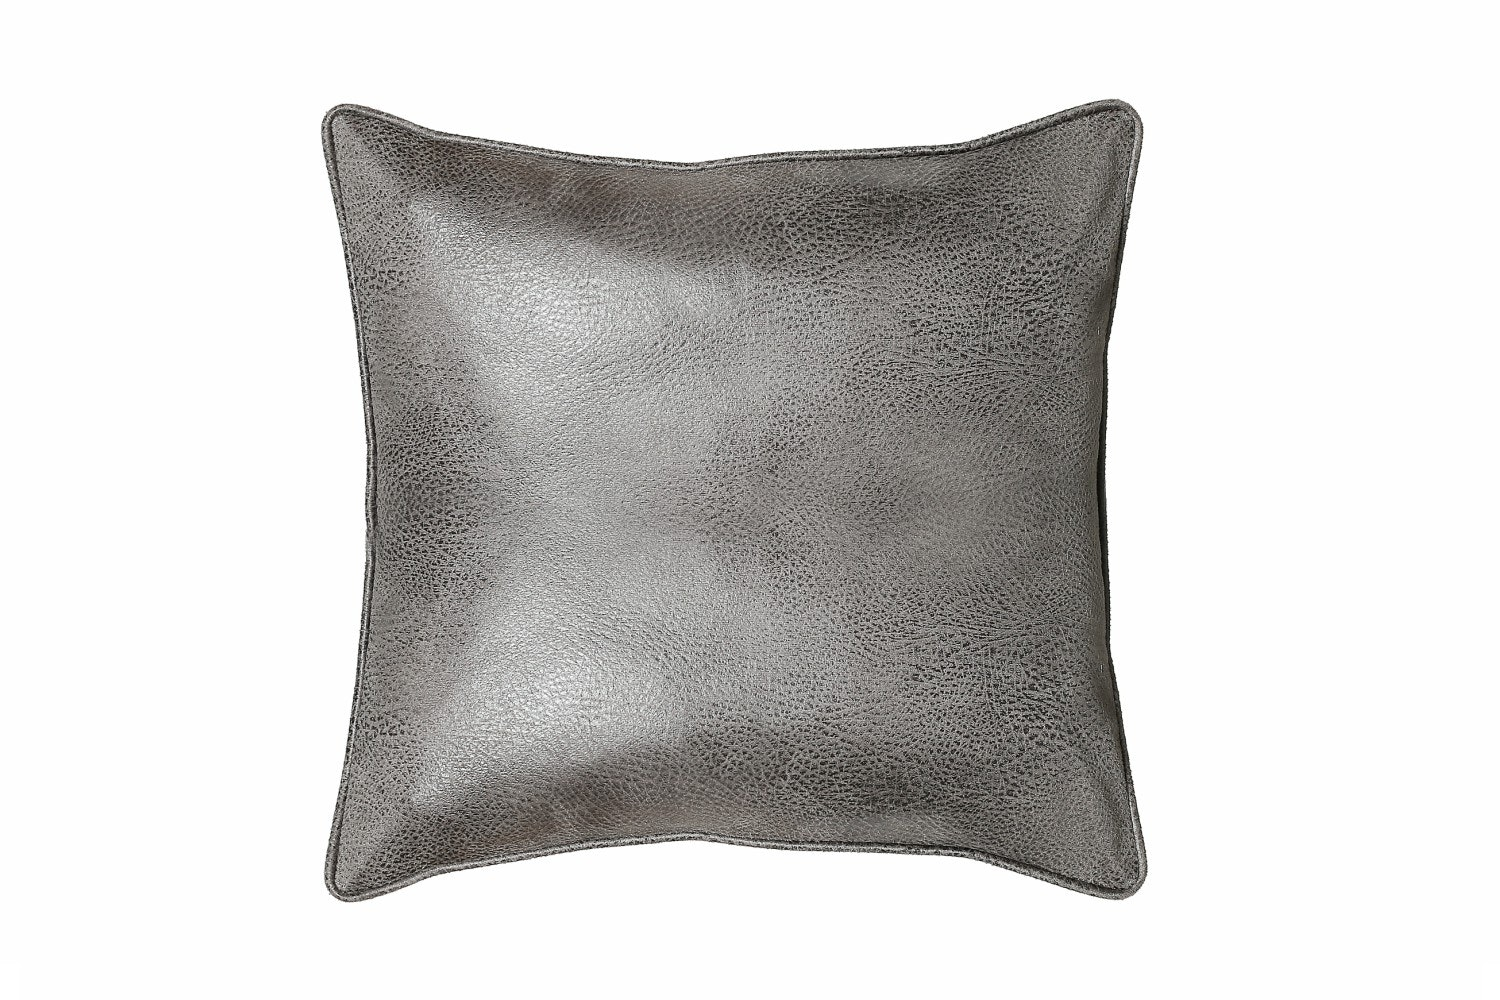 Tap Beluga Faux Leather Cushion